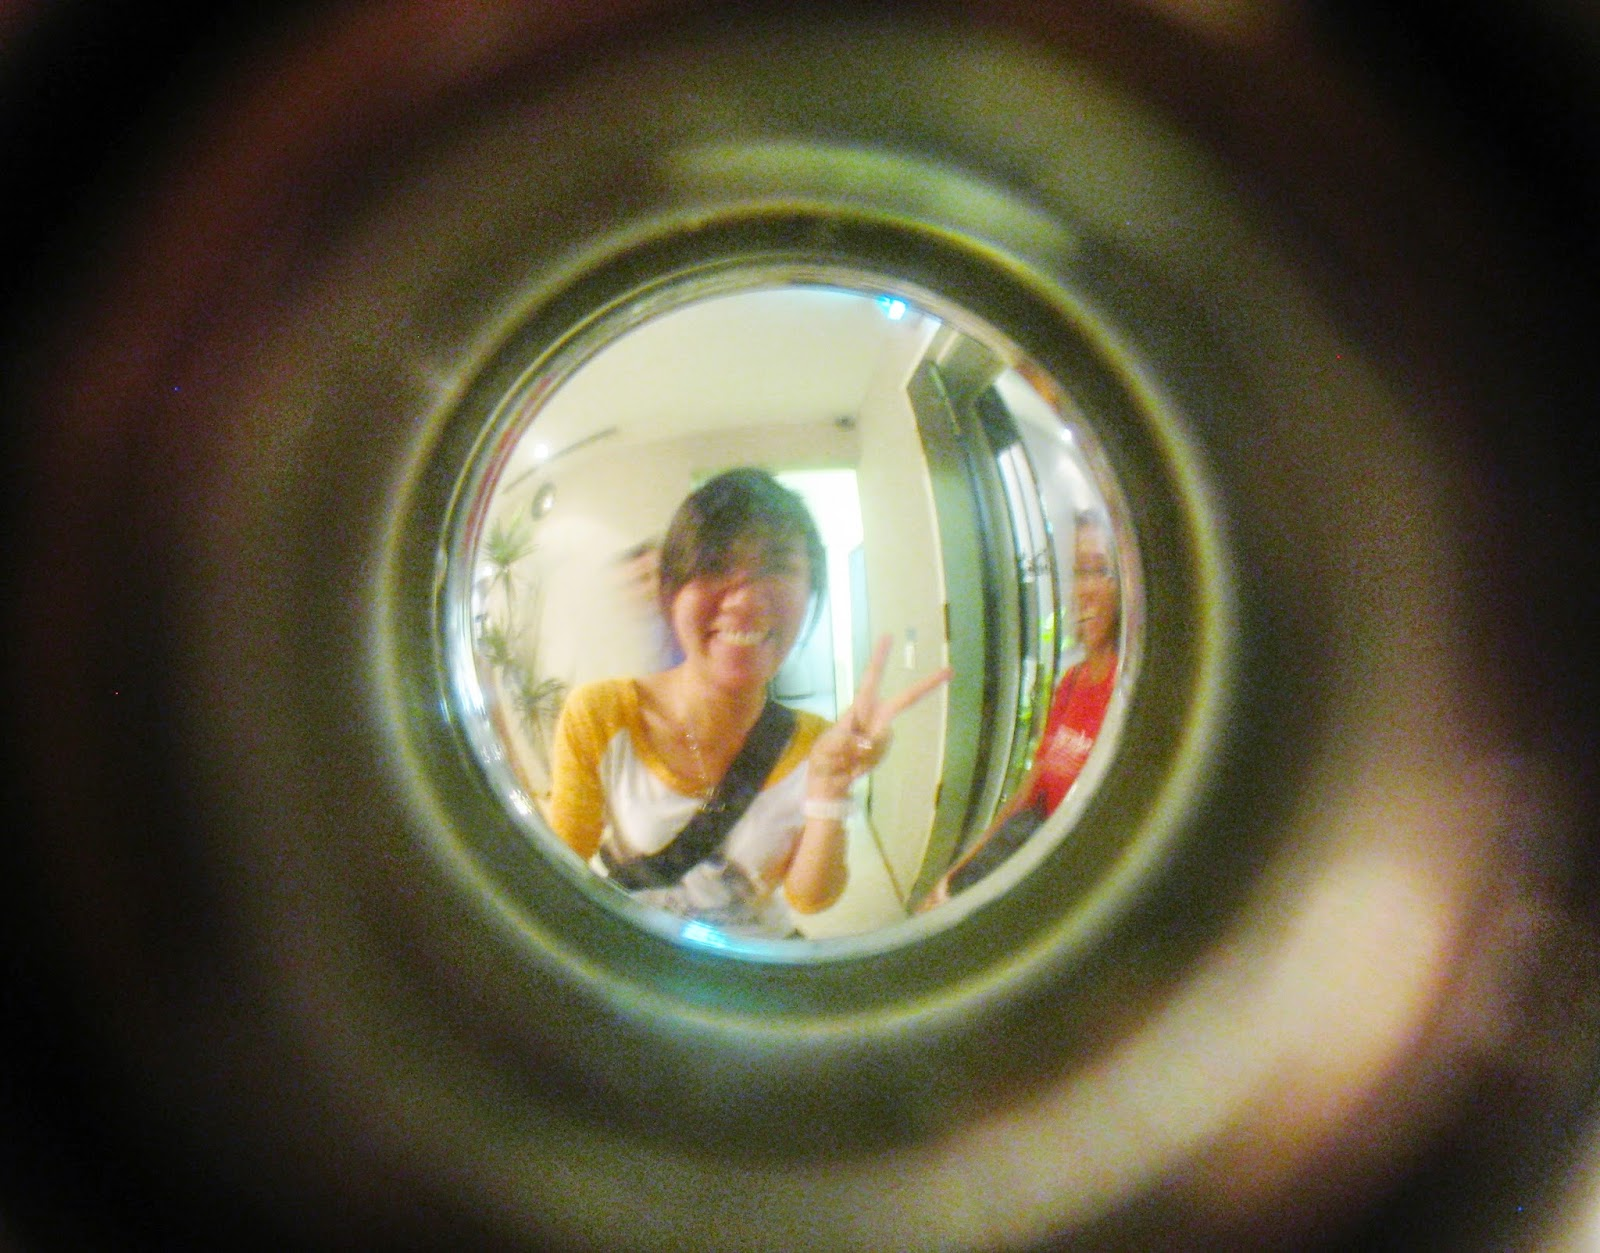 funny door peephole picture